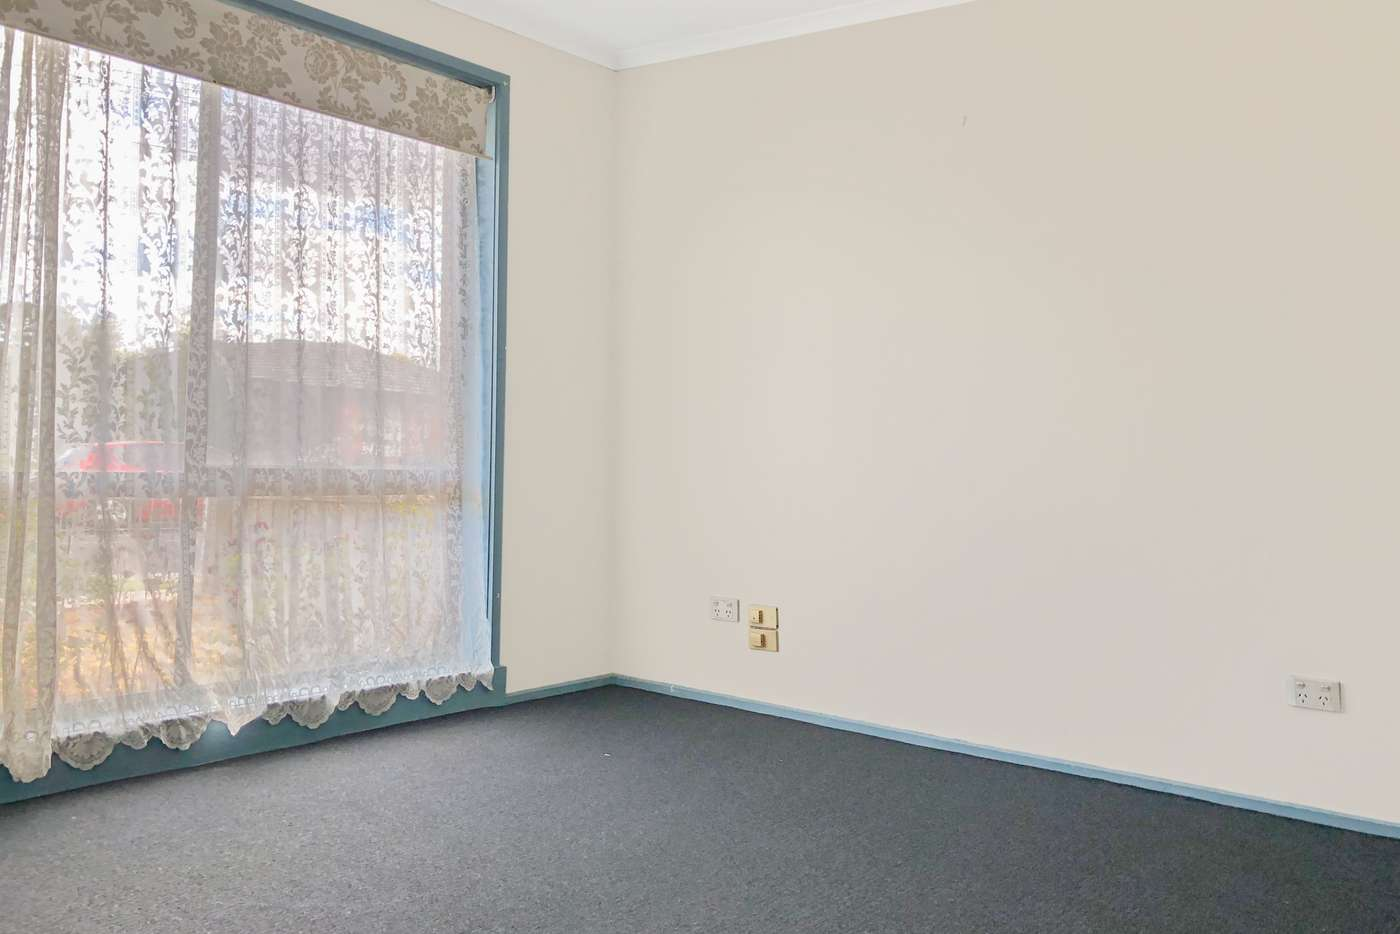 Sixth view of Homely house listing, 14 Intervale Drive, Wyndham Vale VIC 3024